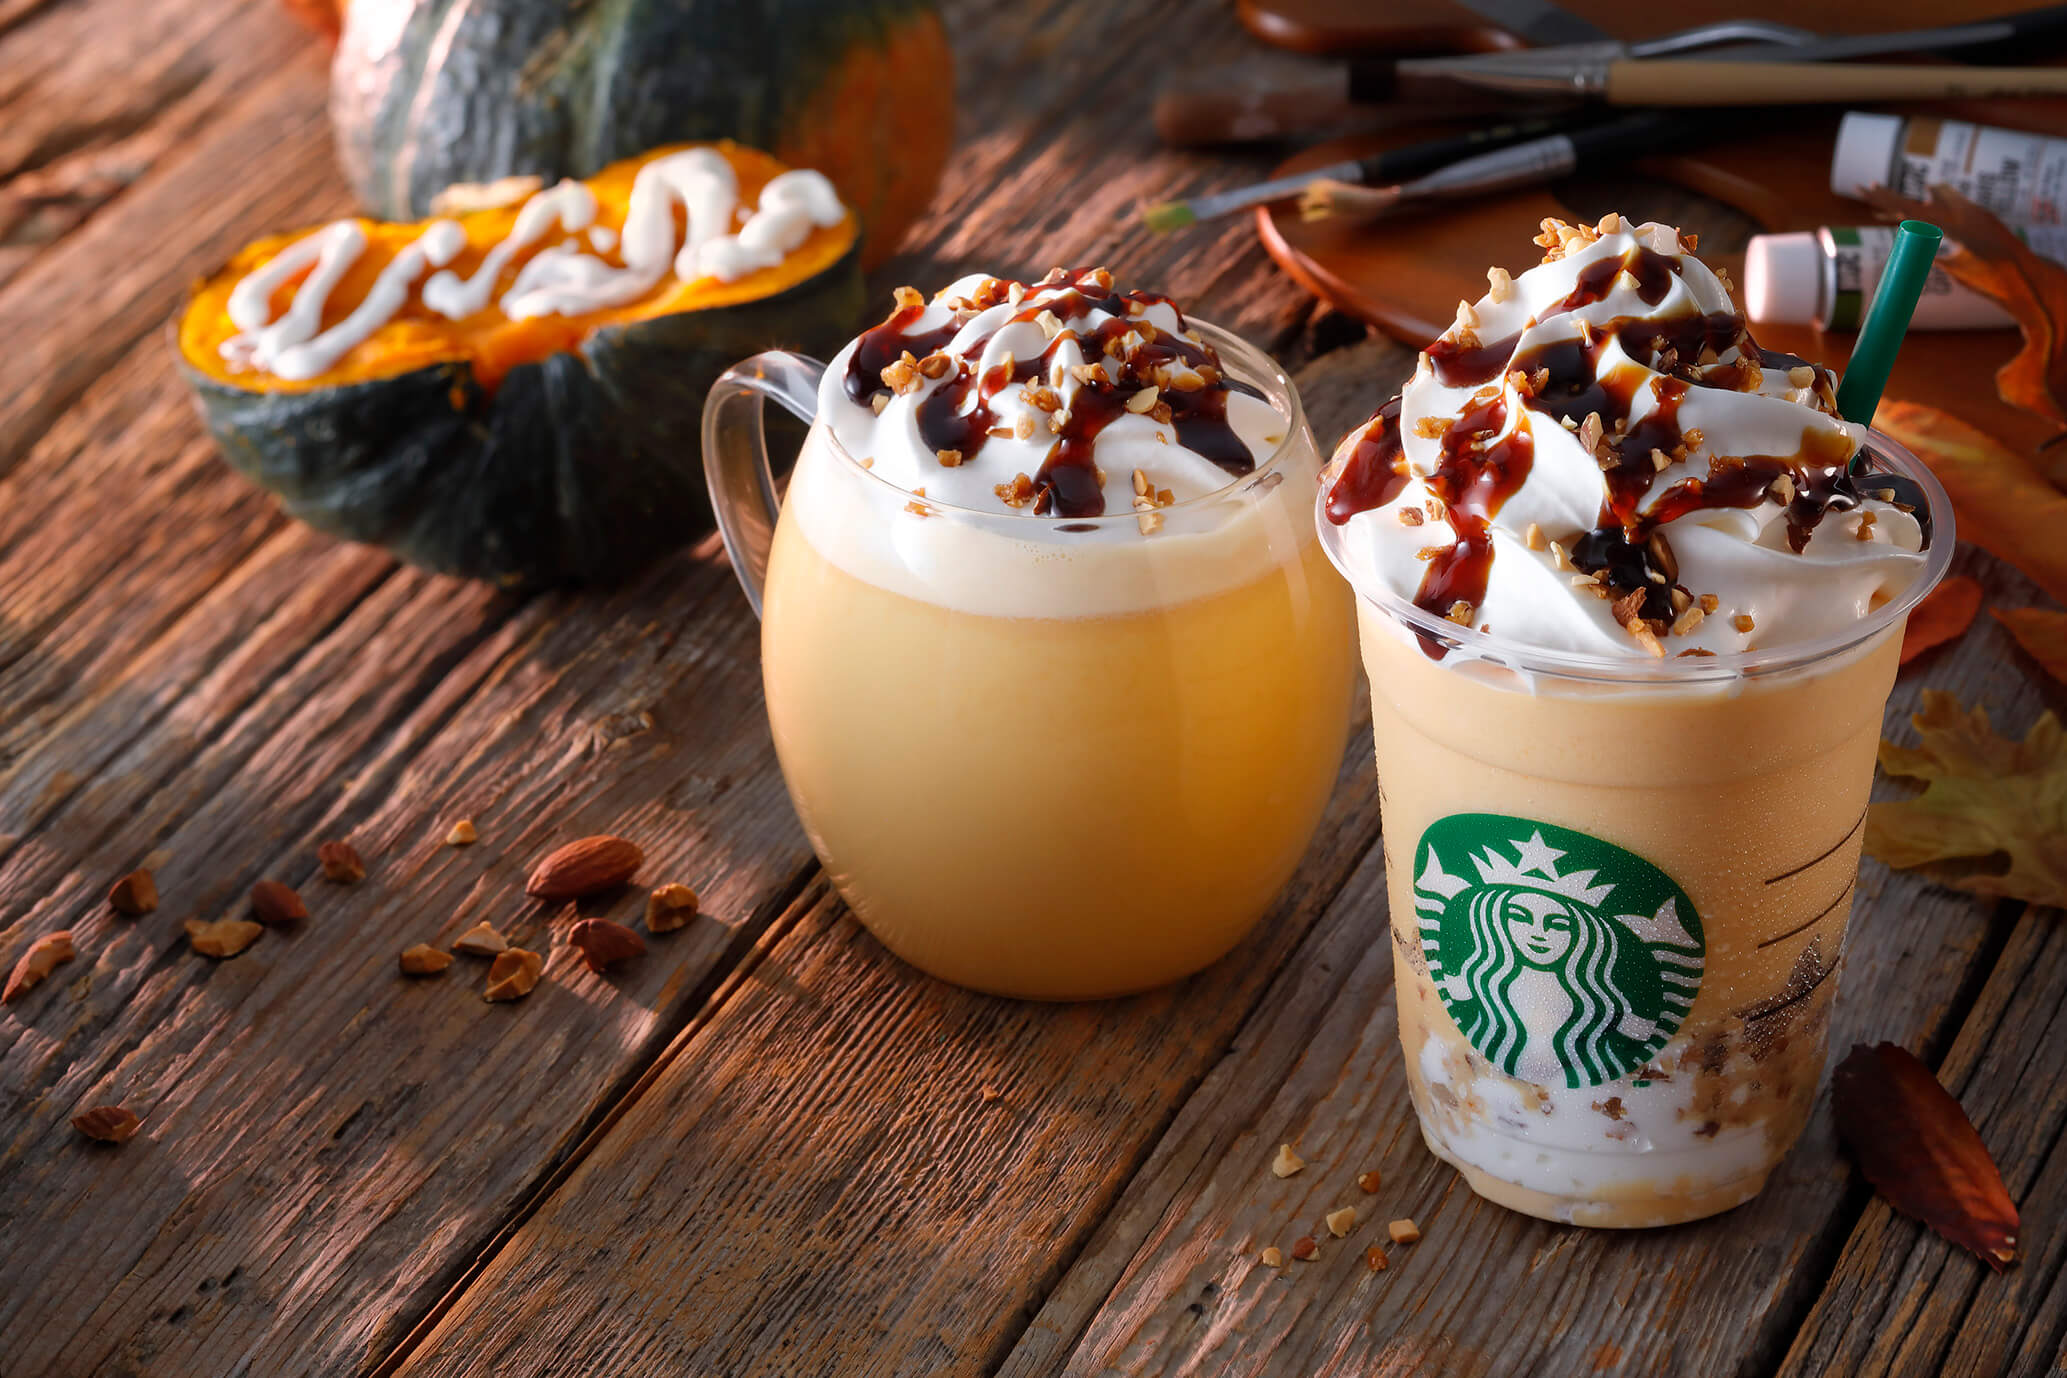 575e2a29d9a Both the Frappuccino® and the hot drink are topped with candied almonds for  added texture which marry perfectly with the pumpkin as well as a bitter  caramel ...